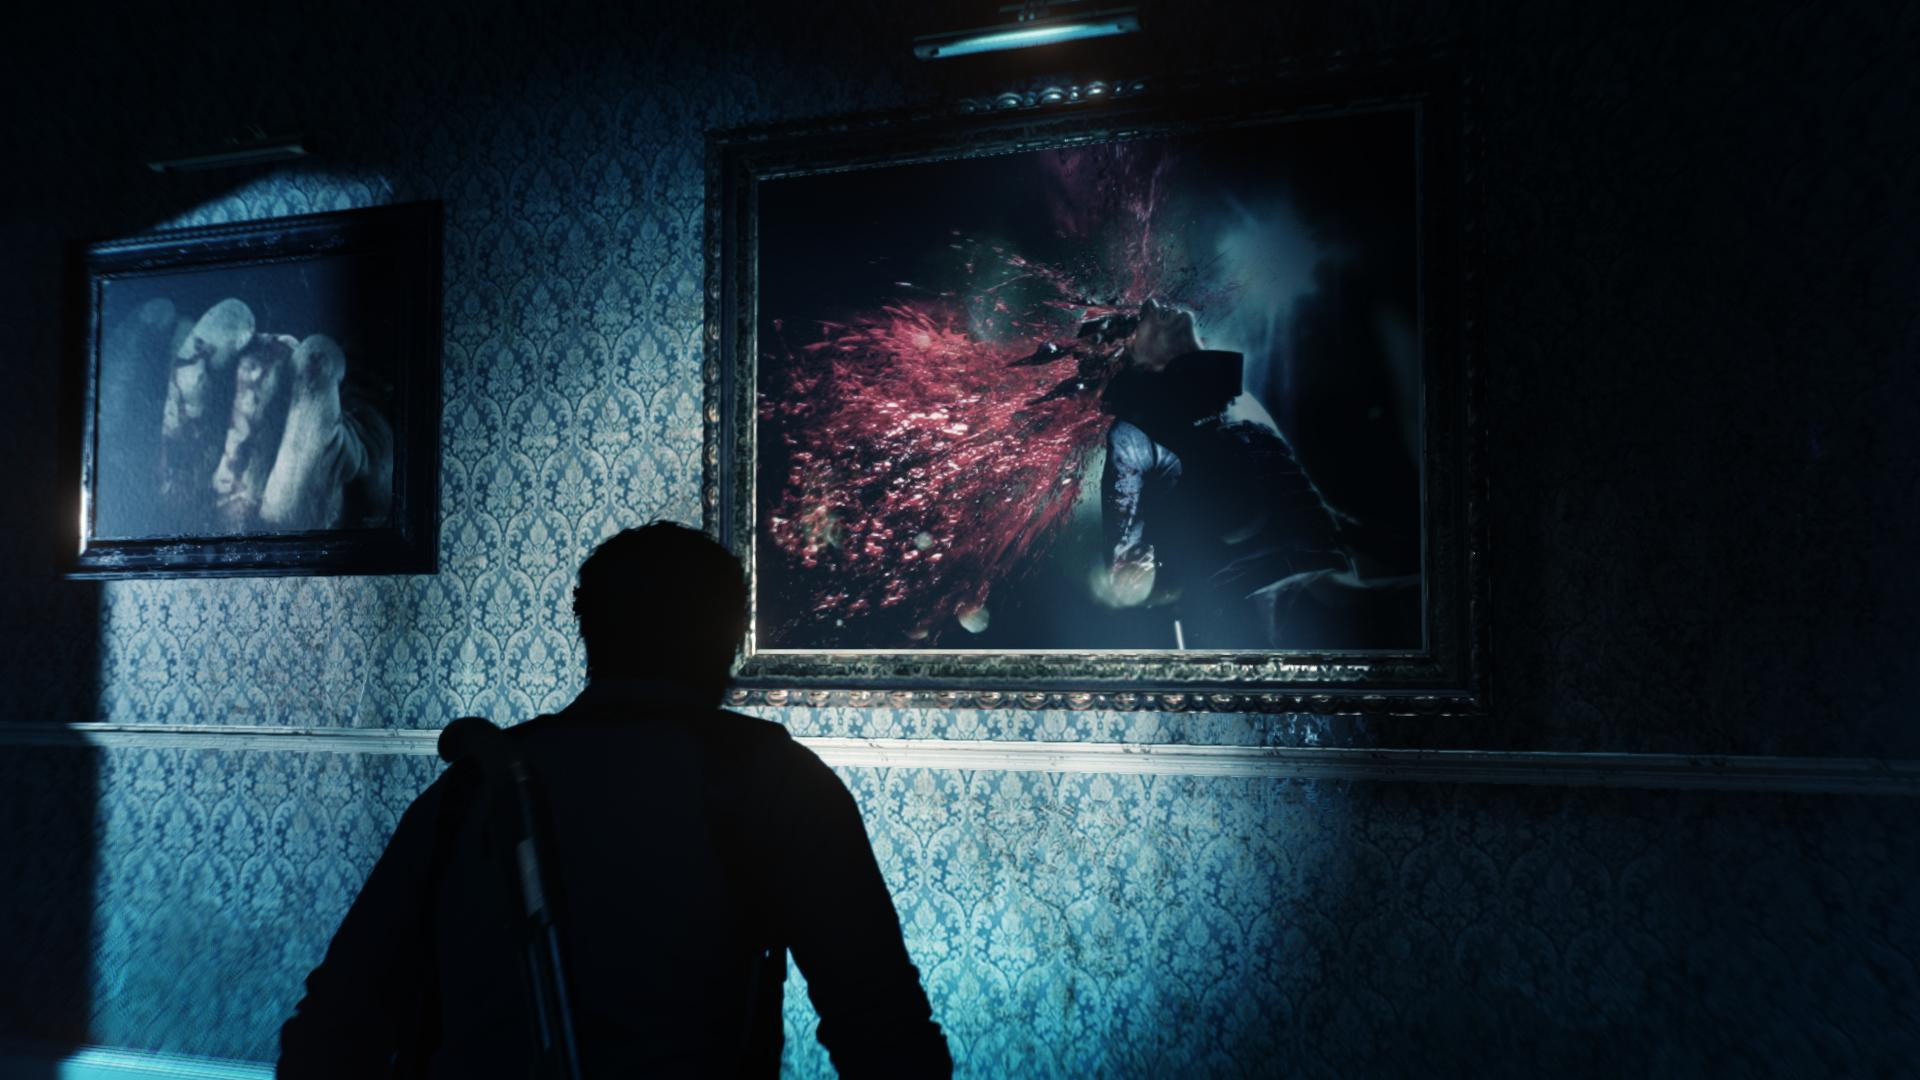 00020.Jpg - Evil Within 2, the